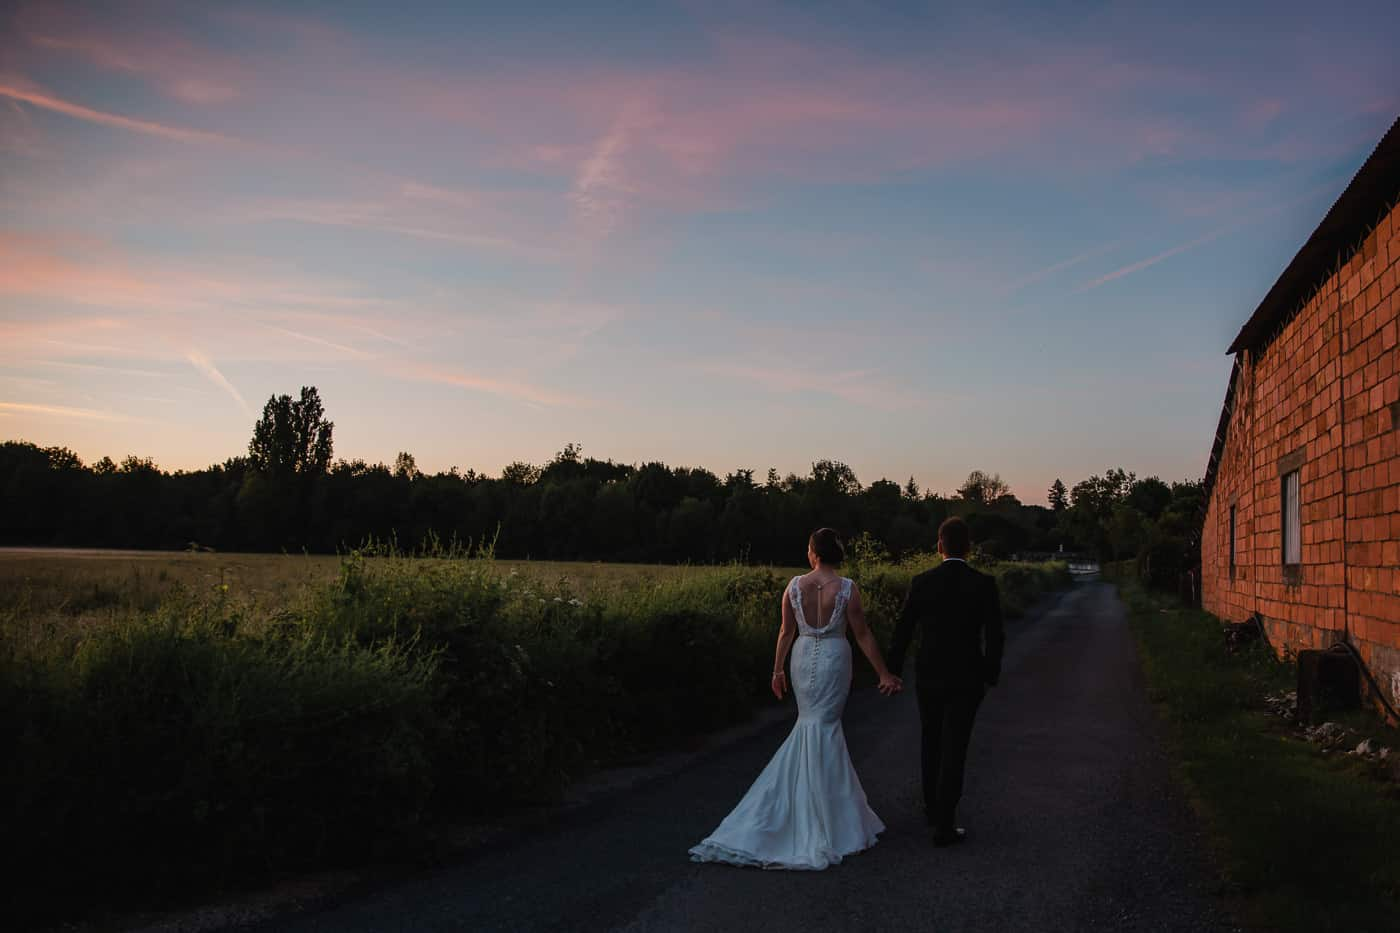 Chateau de la Couronne Wedding Photography - Couple at Sunset